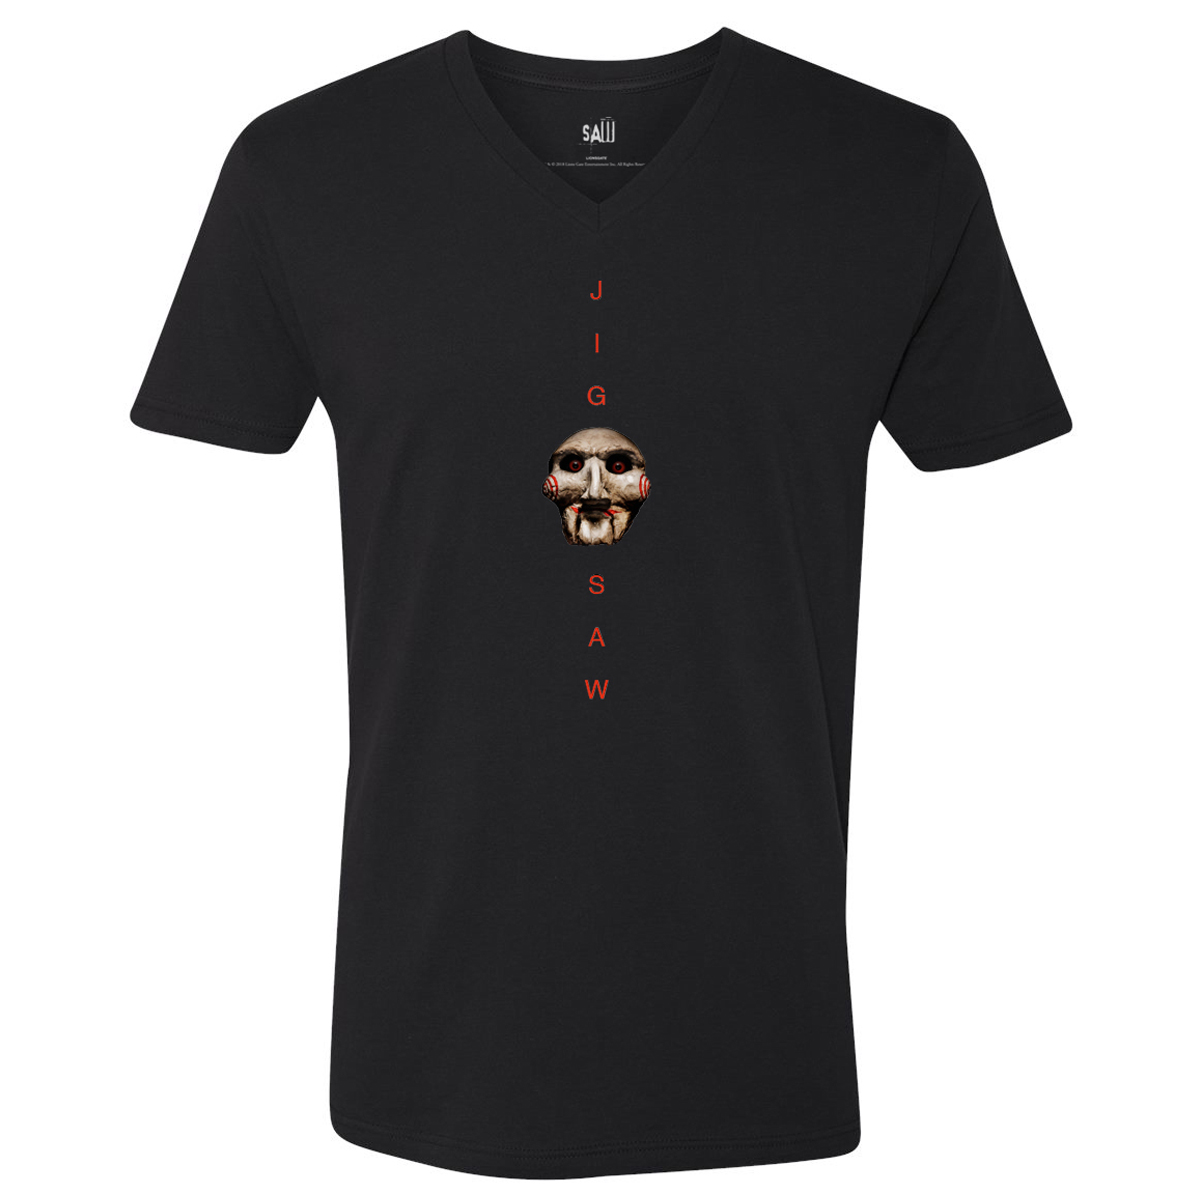 Saw Jigsaw V-Neck T-Shirt